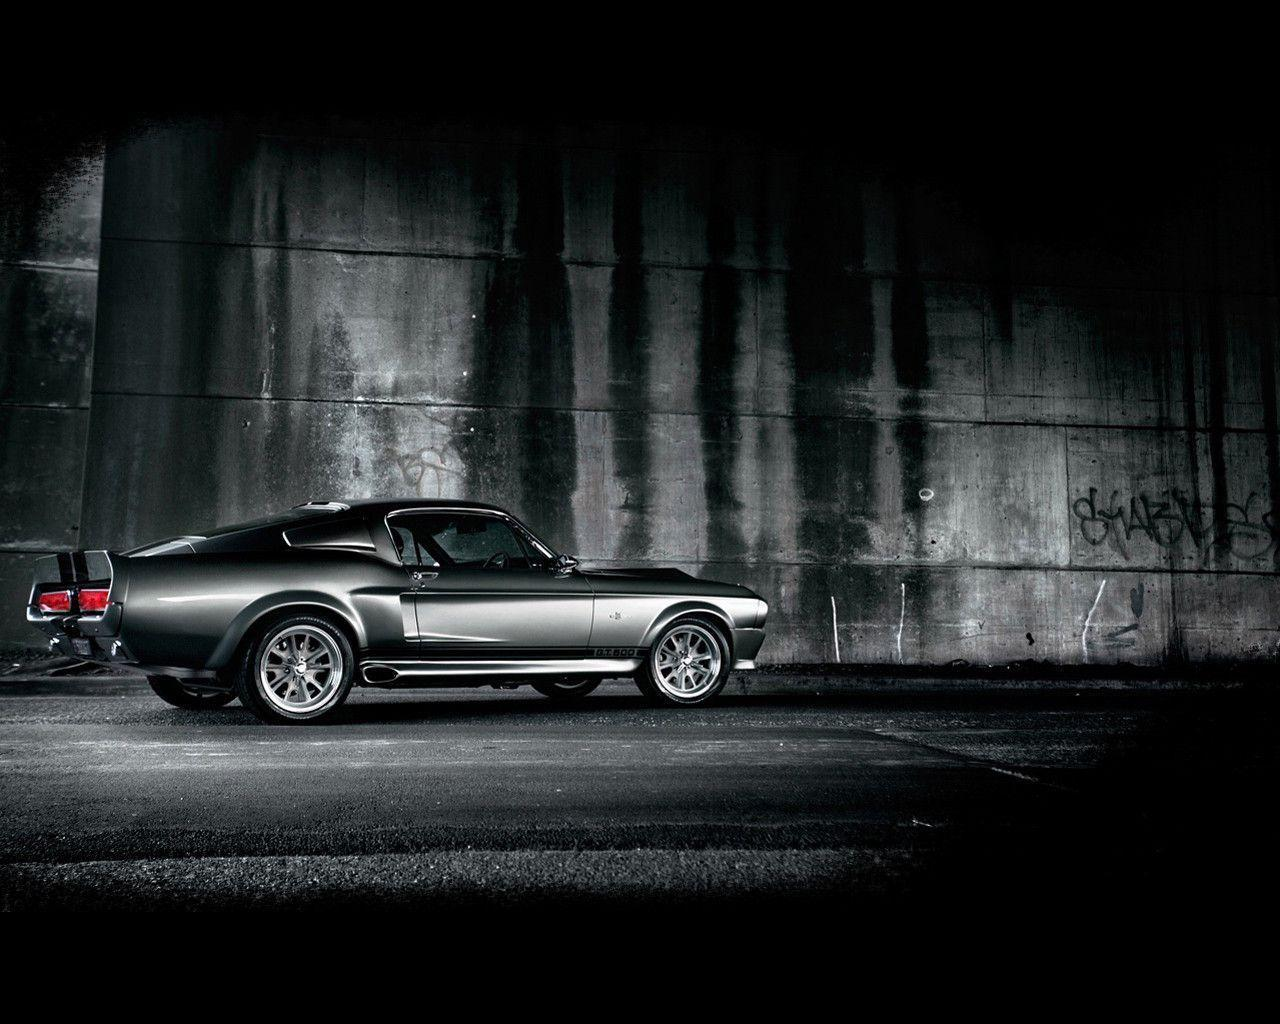 Mustang Gt 0 60 >> 67 Mustang Wallpapers - Wallpaper Cave